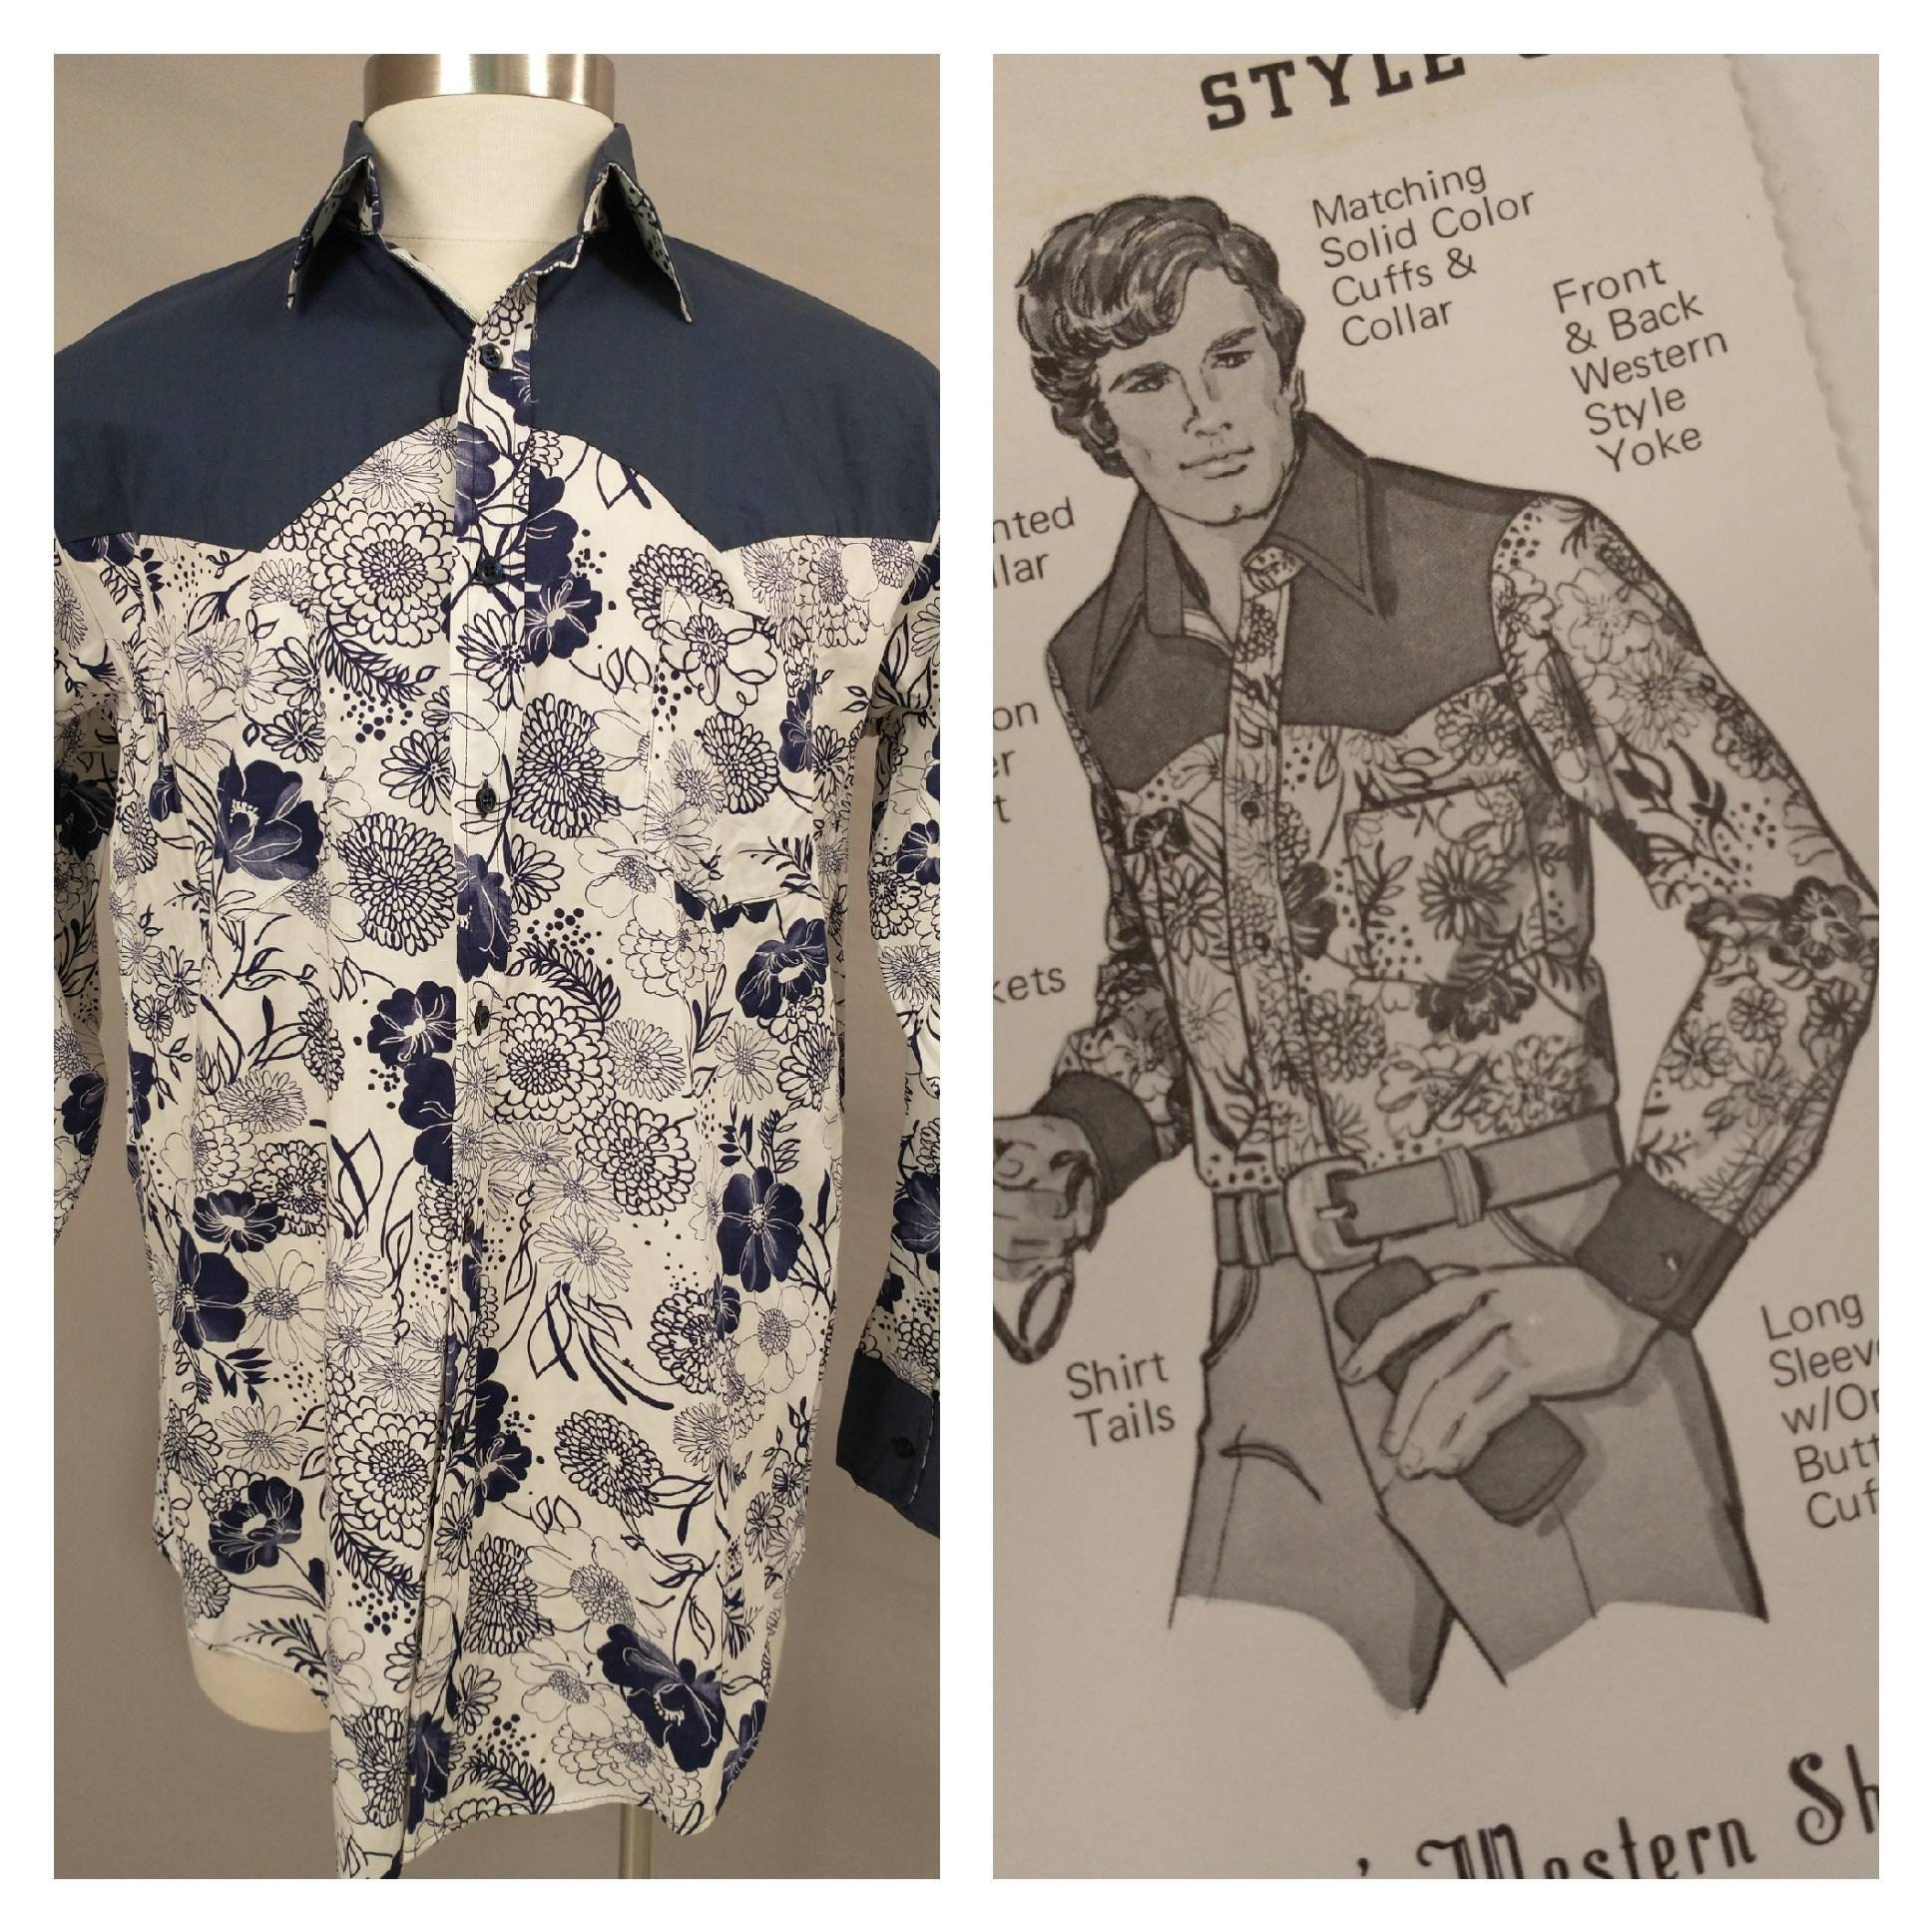 1970s Mens Shirt Styles – Vintage 70s Shirts for Guys 1970s Vintage Button Down Shirt Western Floral Print Collar Deadstock Never Worn New Old Stock Seventies Made in Usa Salesman Sample 1977 $0.00 AT vintagedancer.com